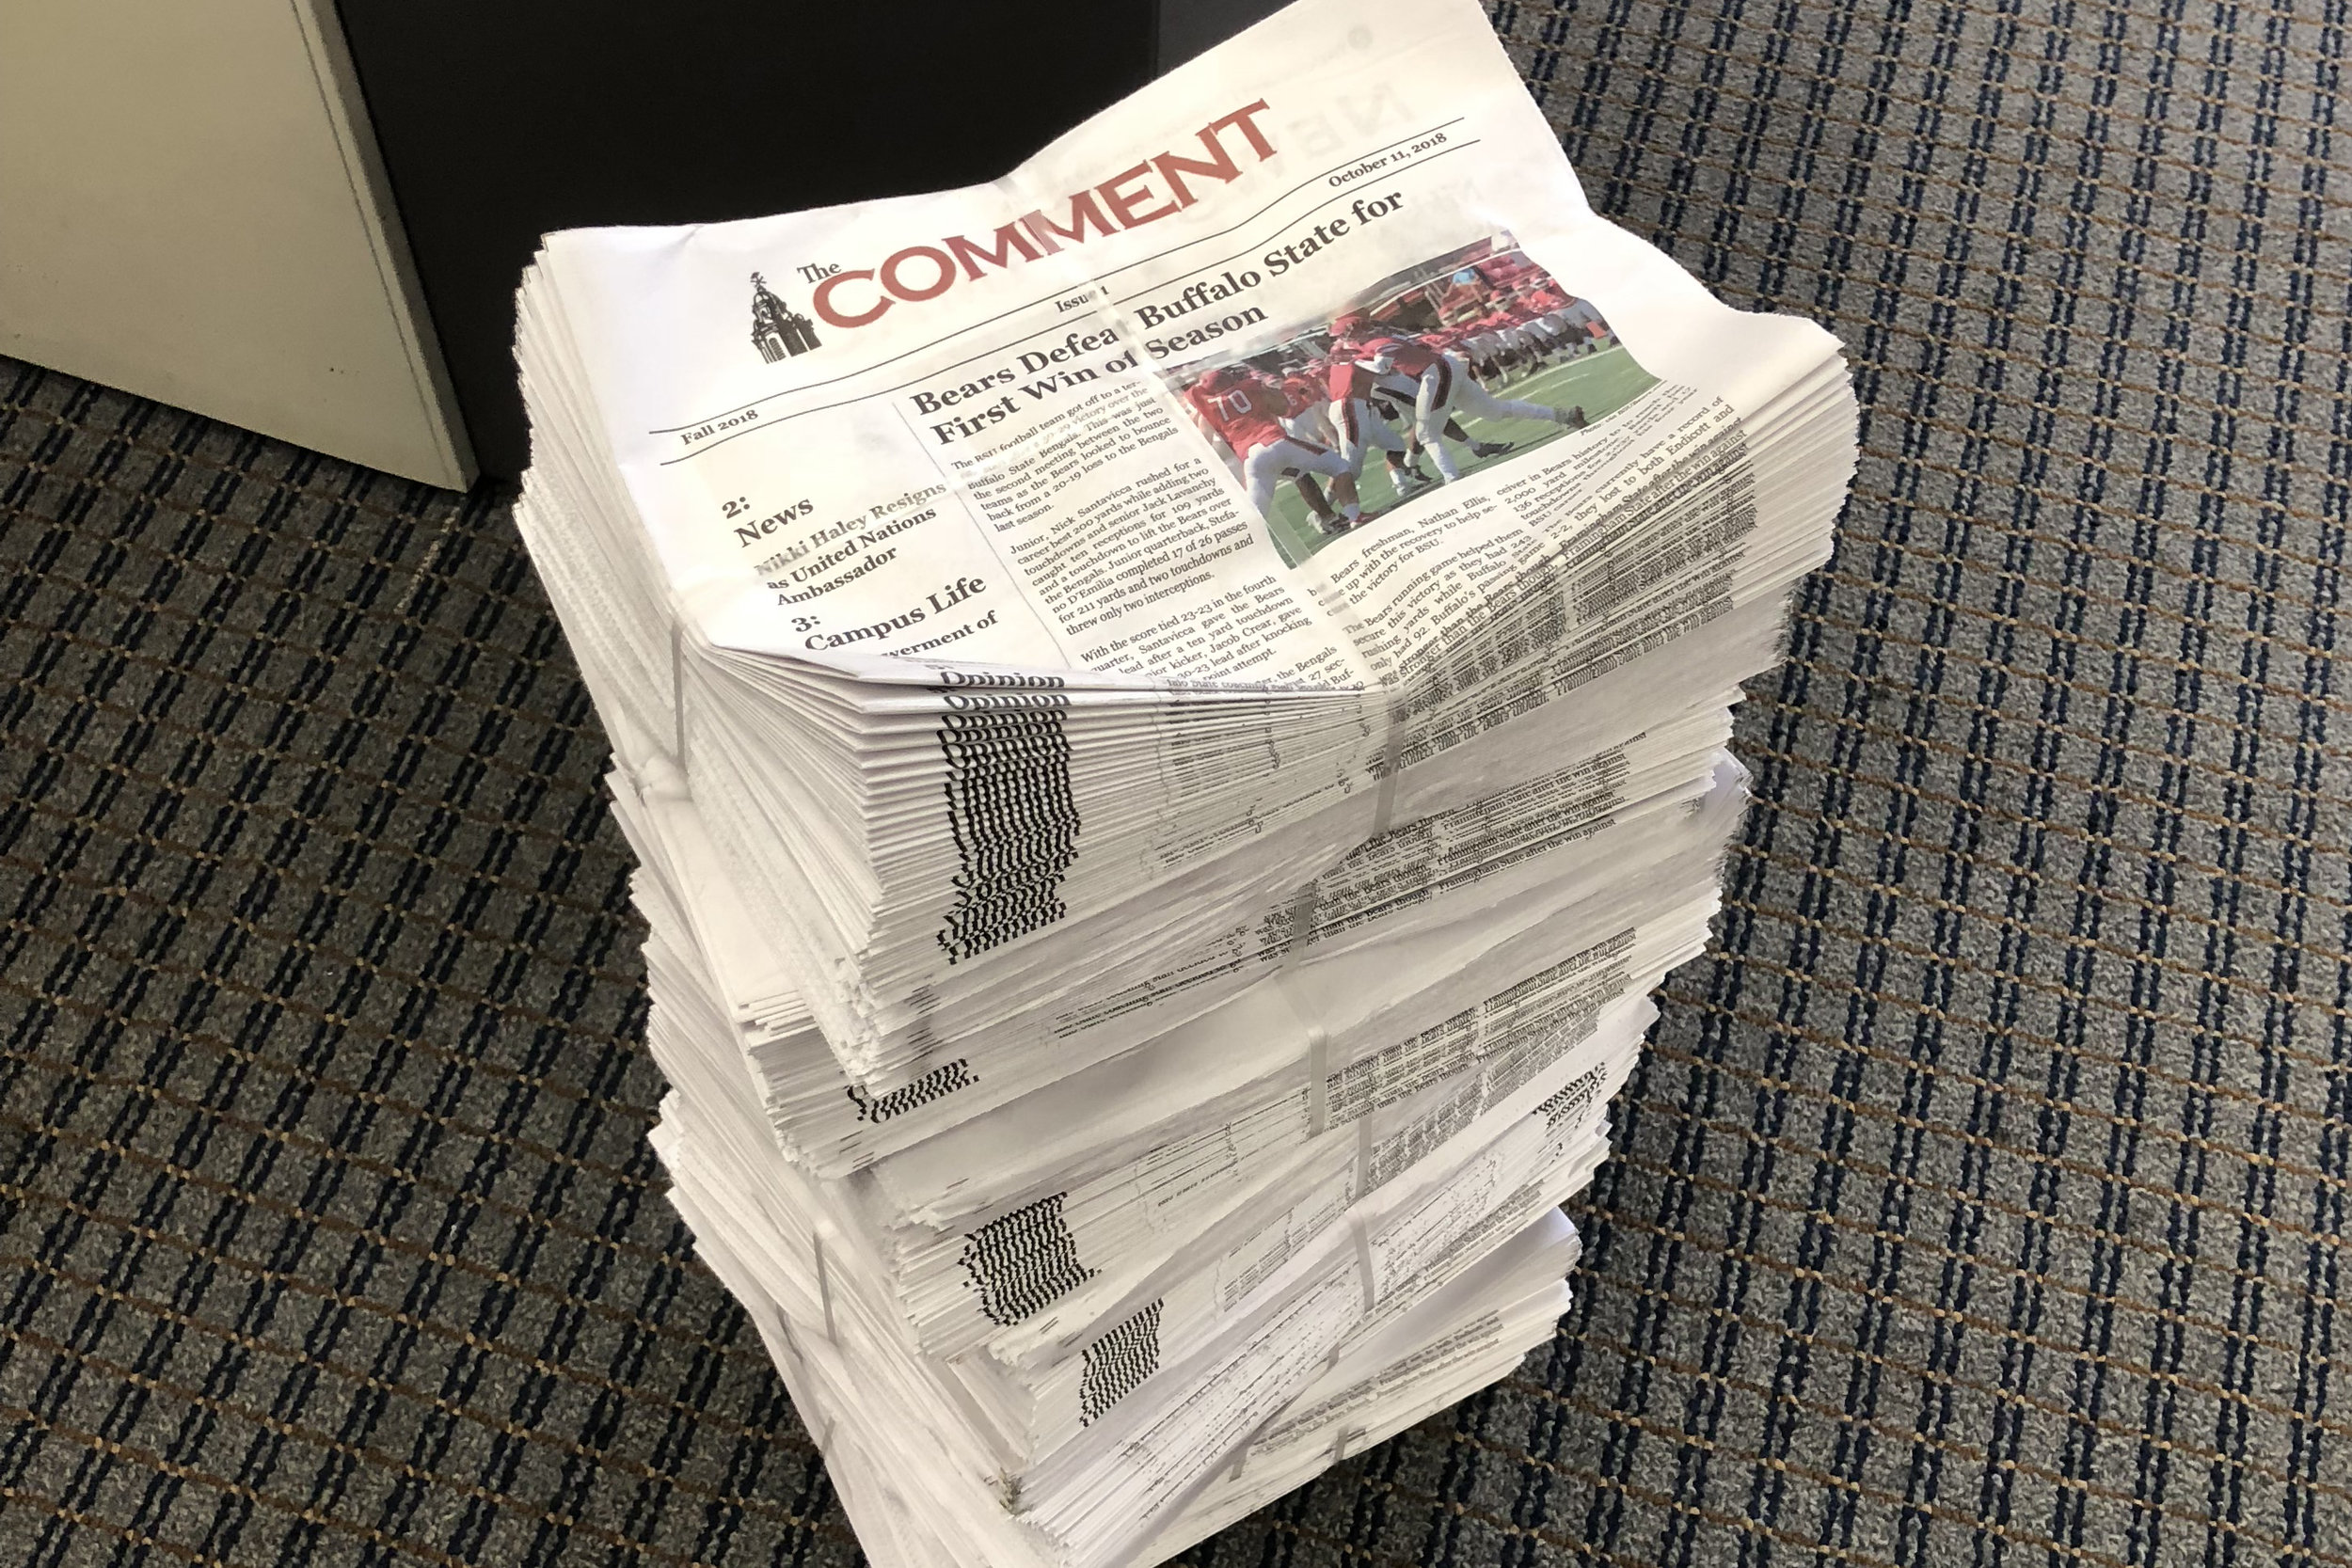 The most recent issue of The Comment, hot off the presses. Photo: Holly Pearson